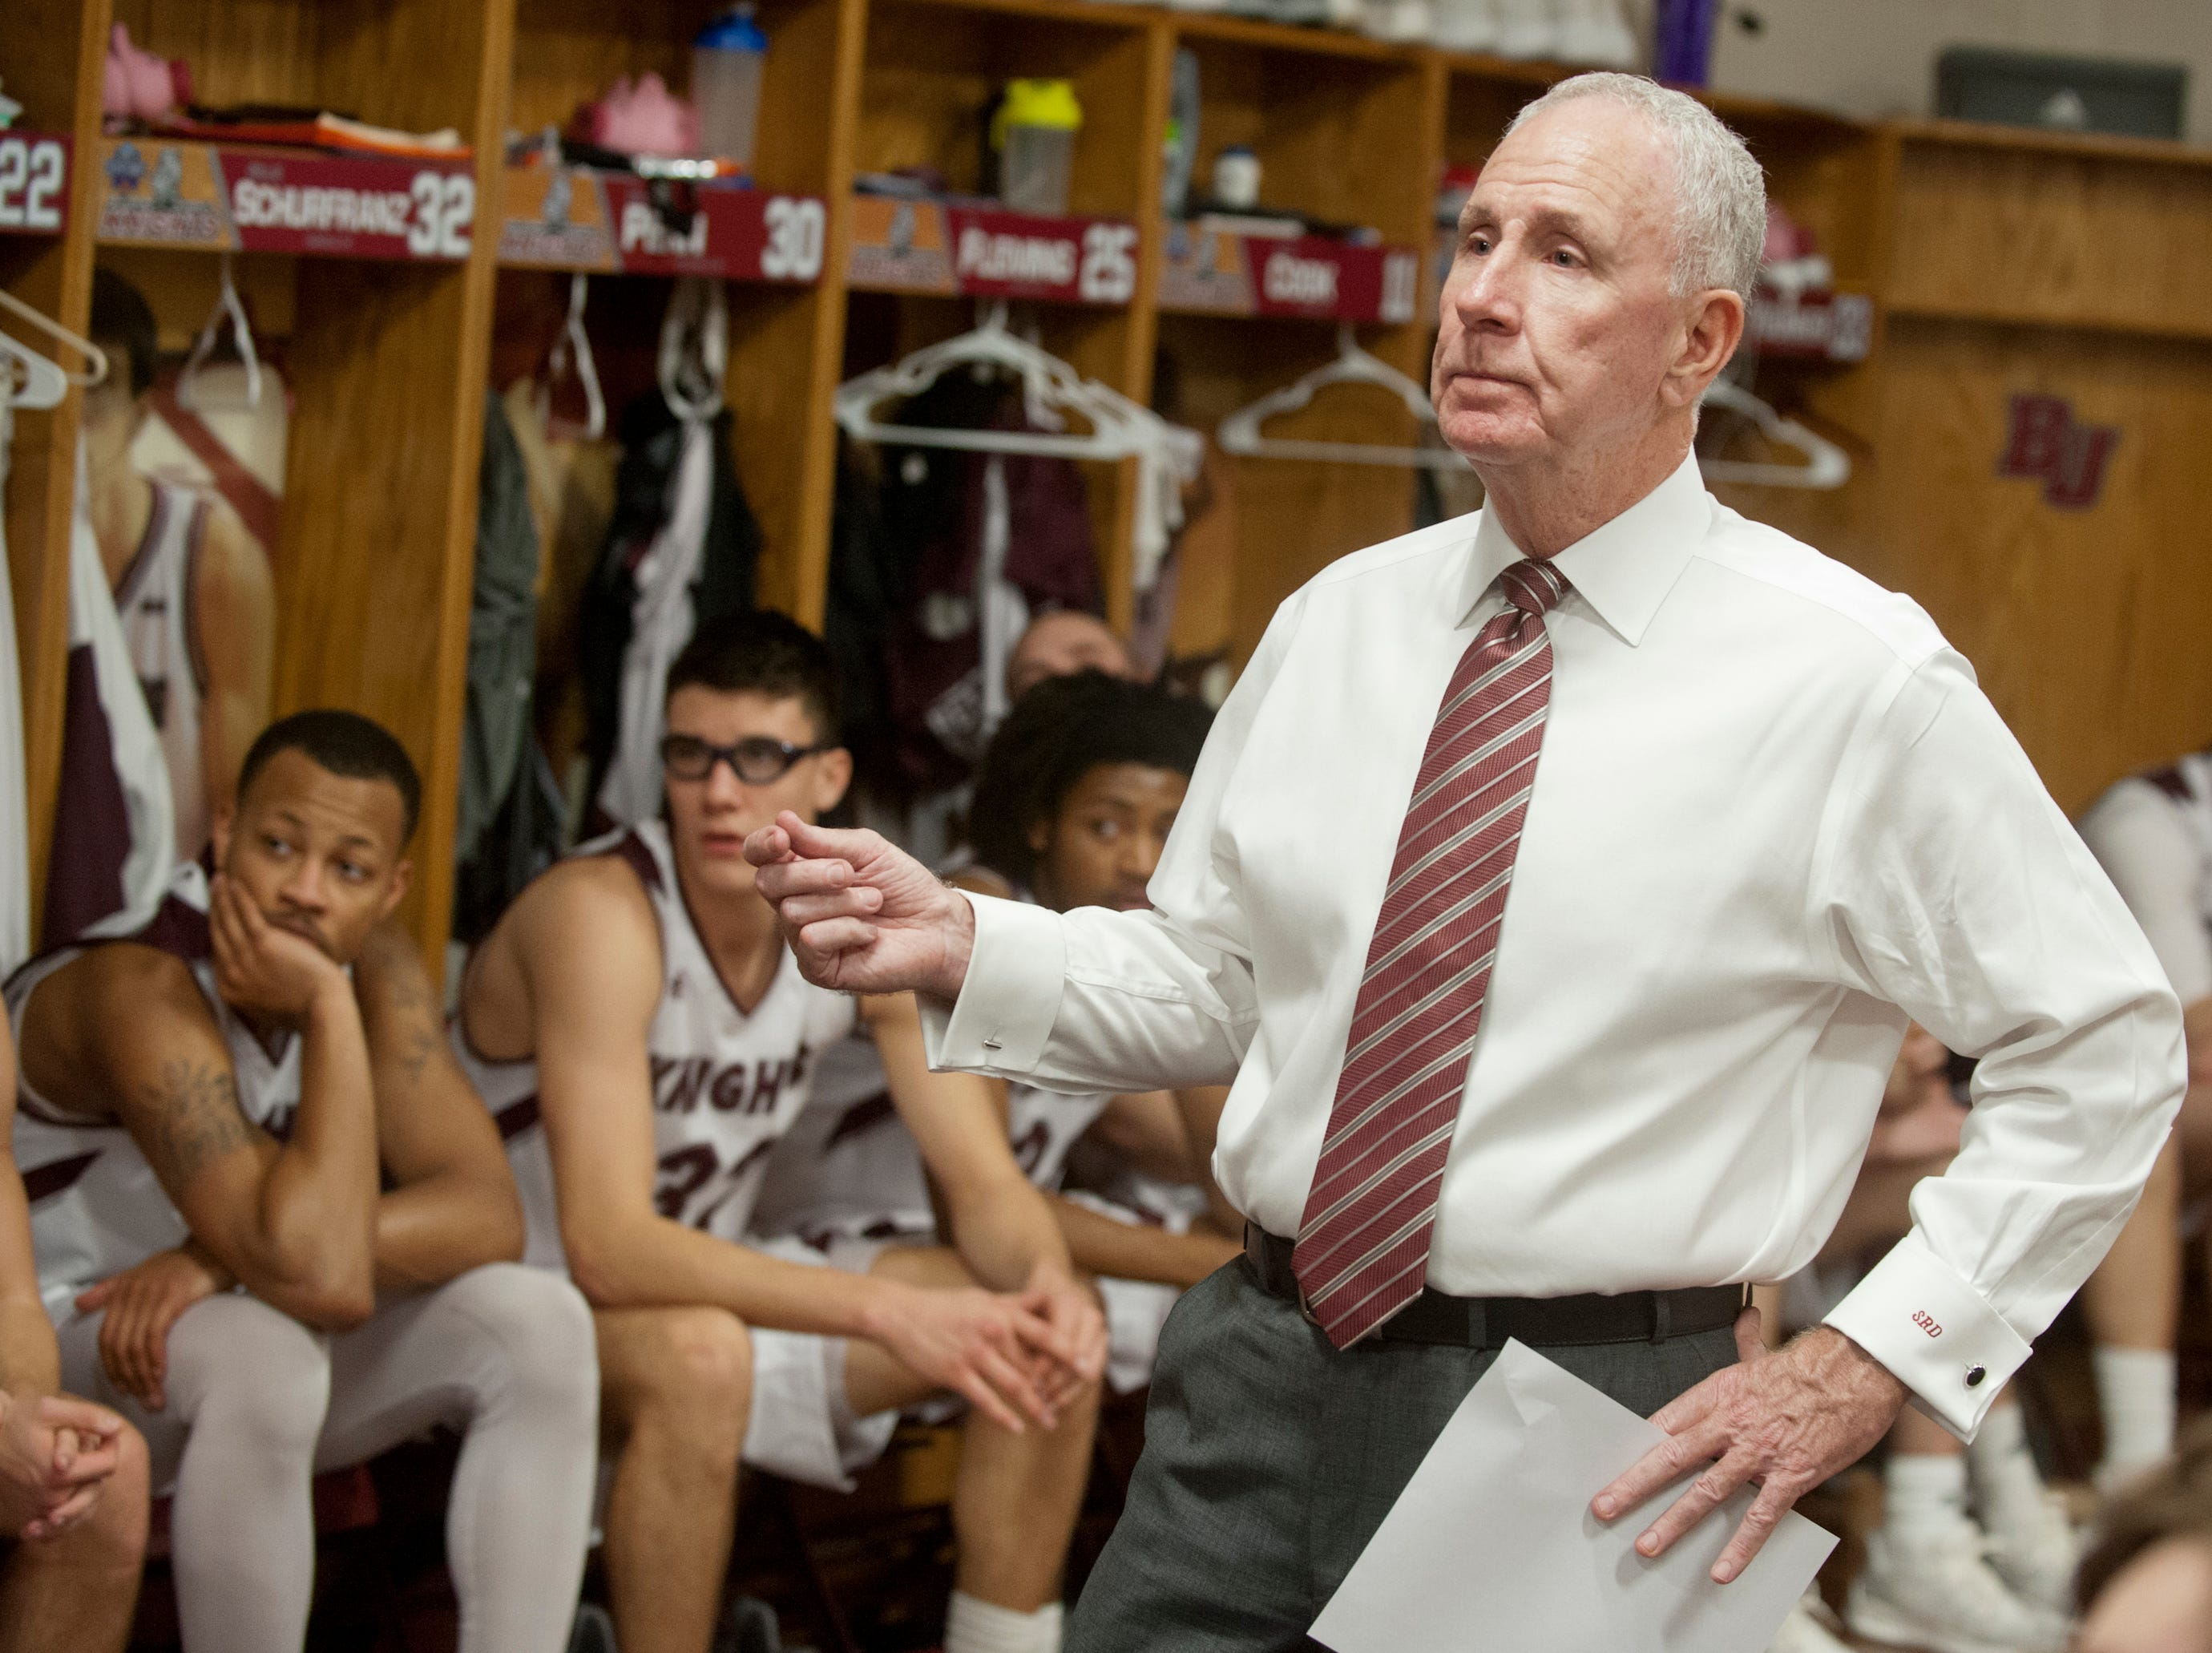 After the game, Bellarmine head basketball coach Scott Davenport reviews his team's performance in the locker room.18 December 2018